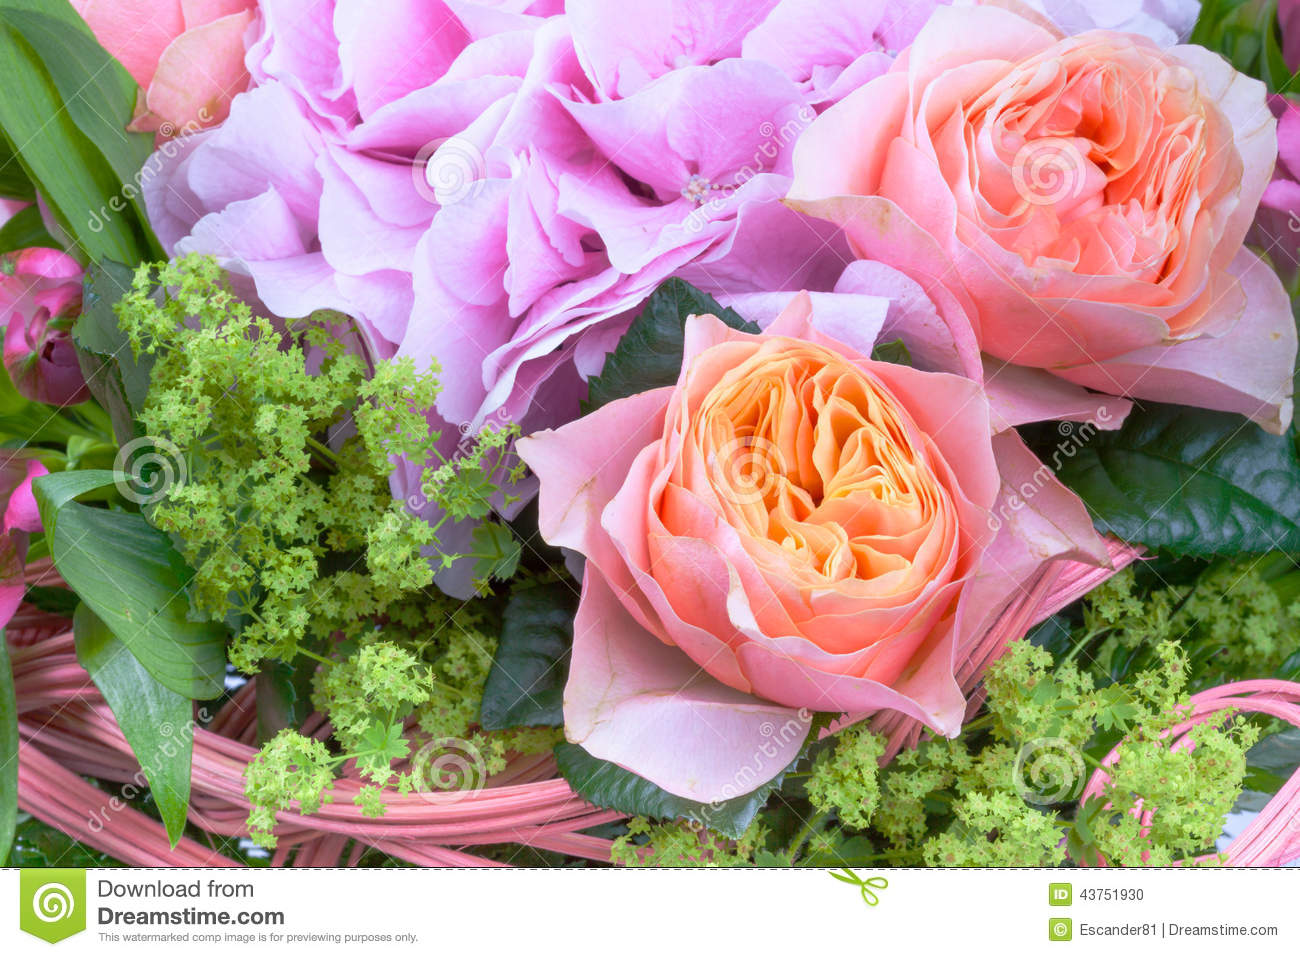 Amazing flower bouquet with roses stock photo image of gift download amazing flower bouquet with roses stock photo image of gift design 43751930 izmirmasajfo